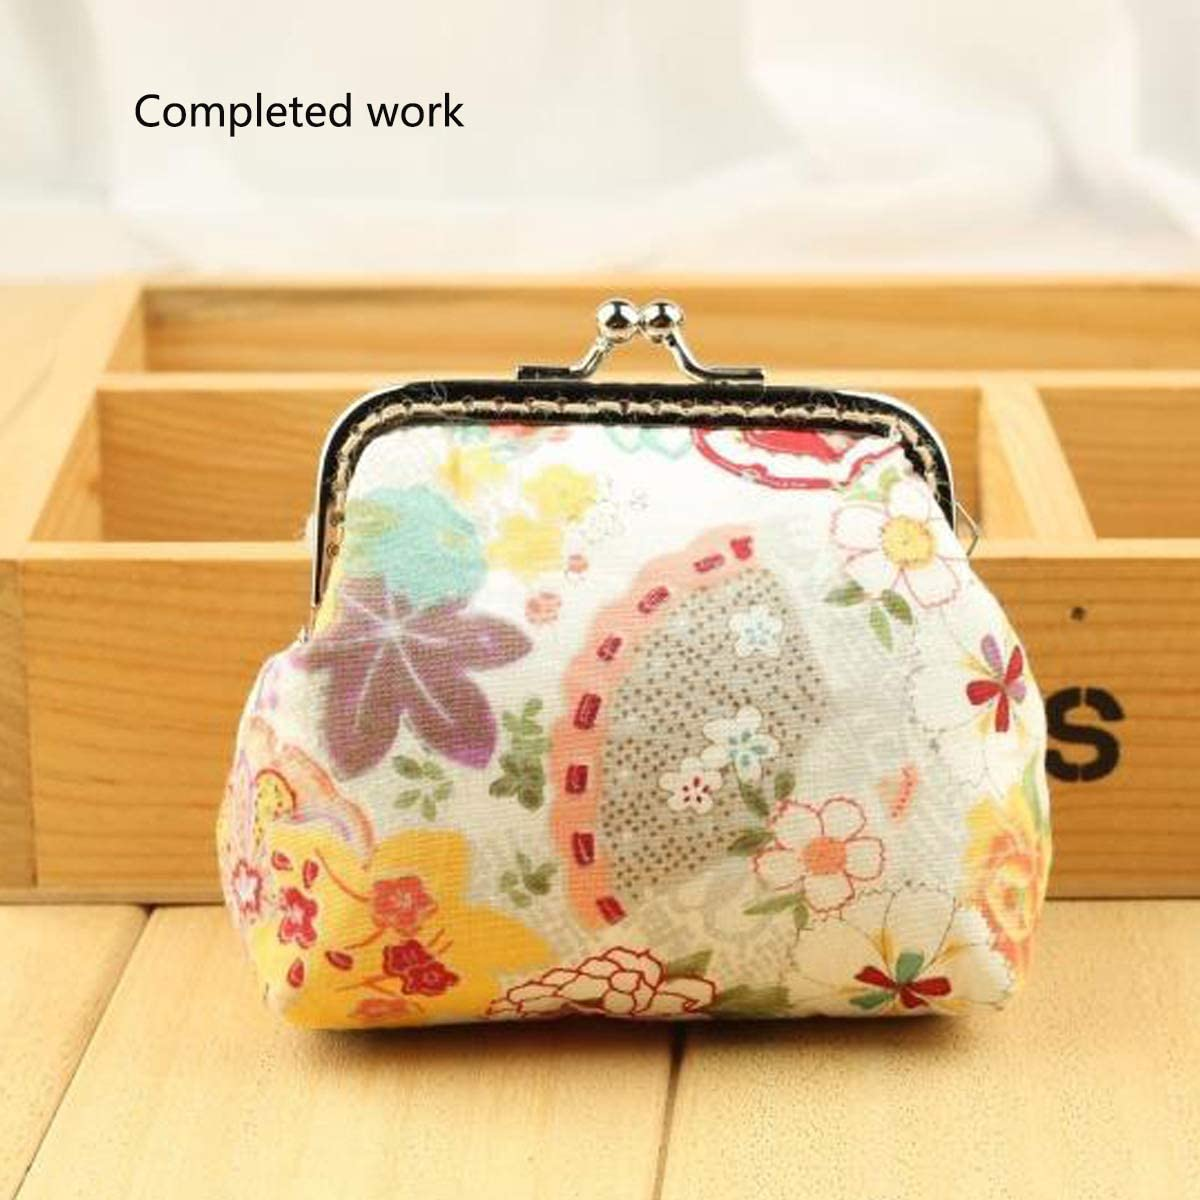 Super Cute Lucky Akita Dog Pattern, Make Your Bag More Cute! Personality Monkey Rise 8.5cm Square Coin Purse Handmade Supplies Peony Flower kiss Clasp Bag Supplies Handmade kit Pack of 3